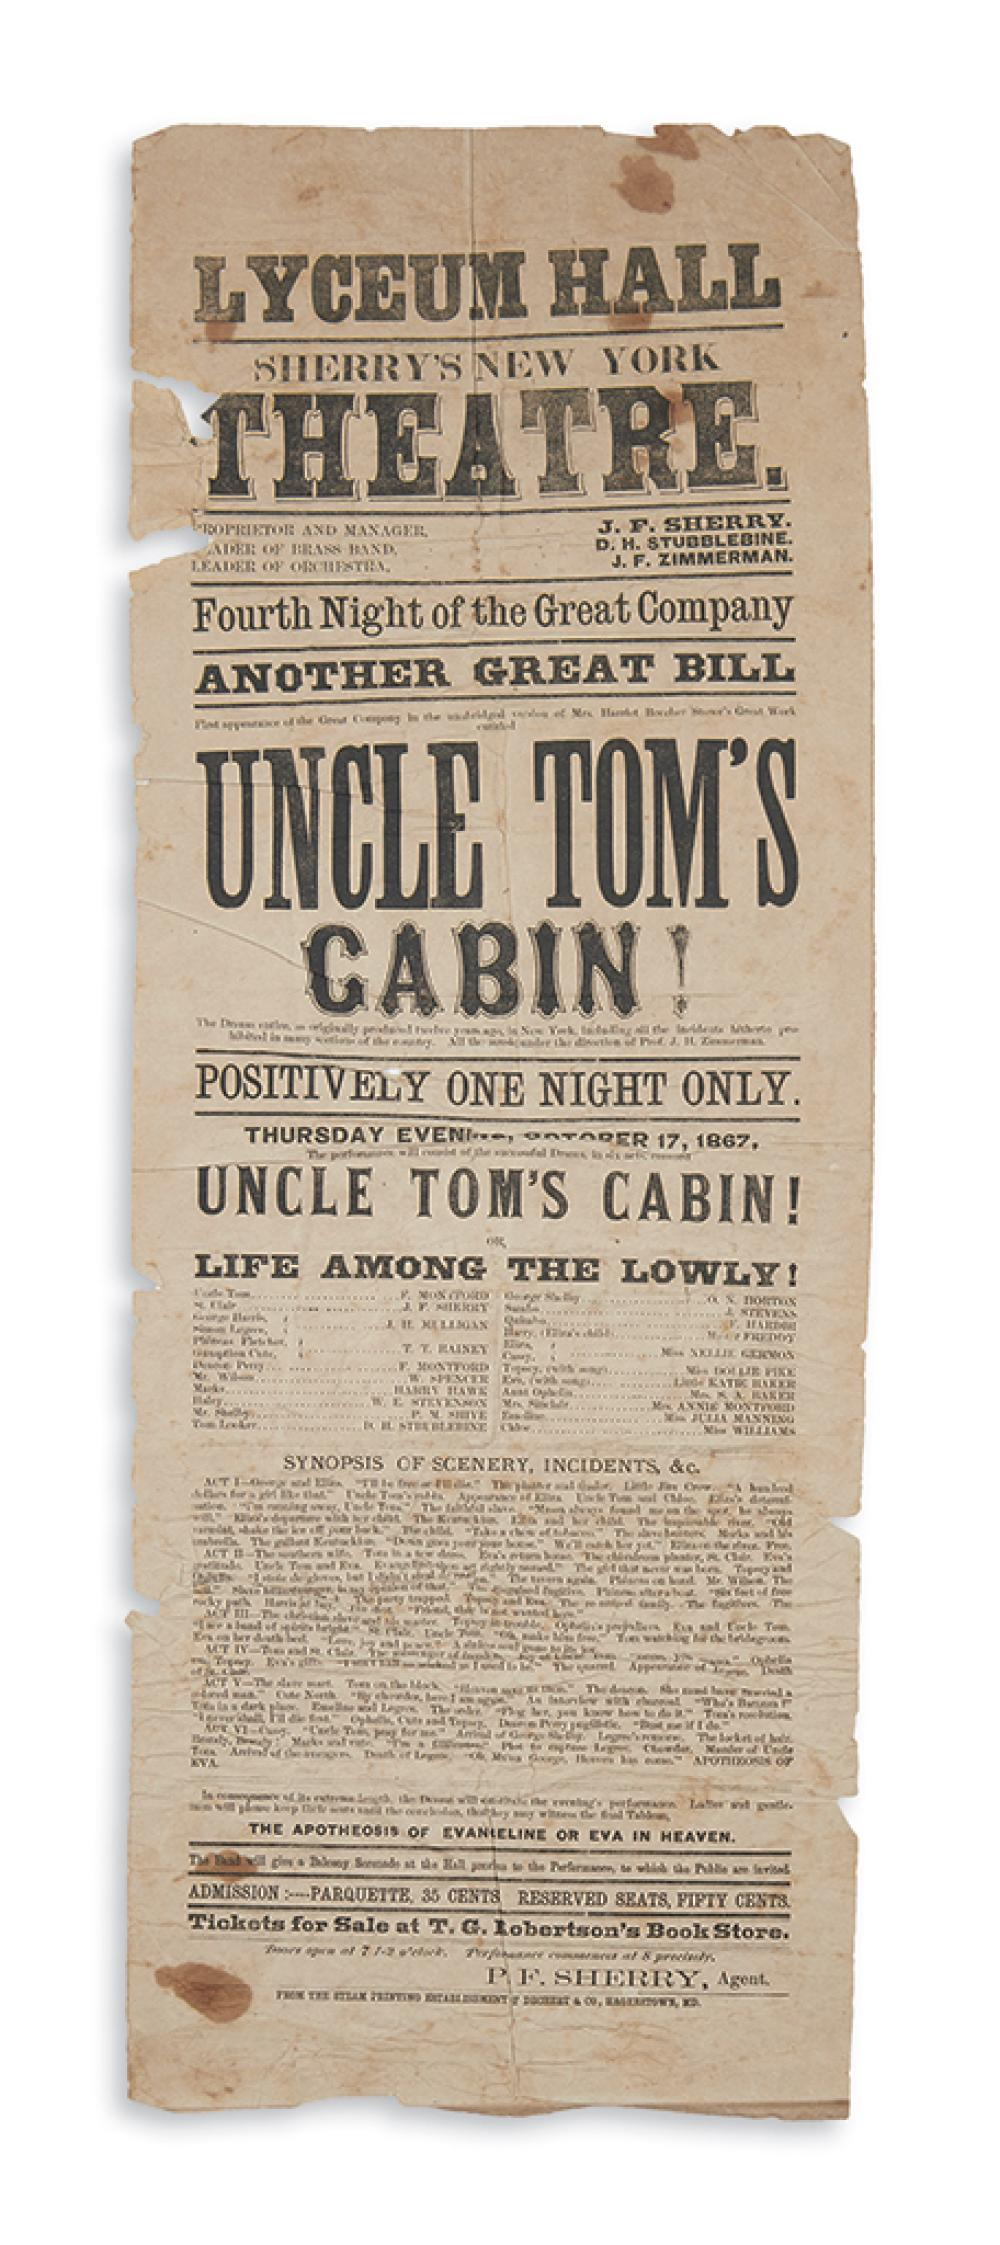 (THEATER.) Broadside playbill for a Maryland performance of Uncle Tom's Cabin by the Sherry's New York Theatre touring company.